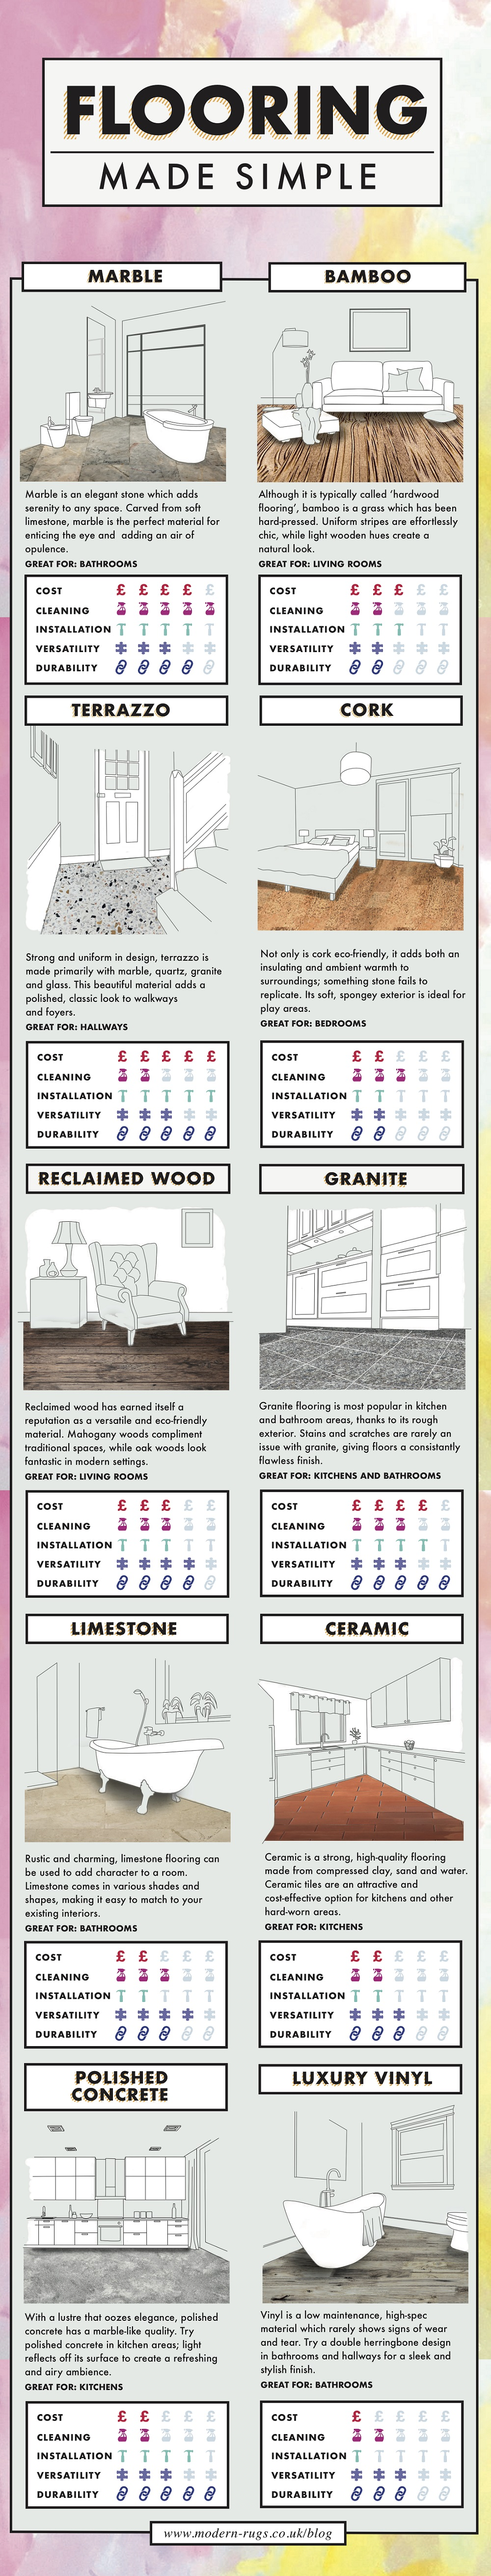 Compare Flooring Options